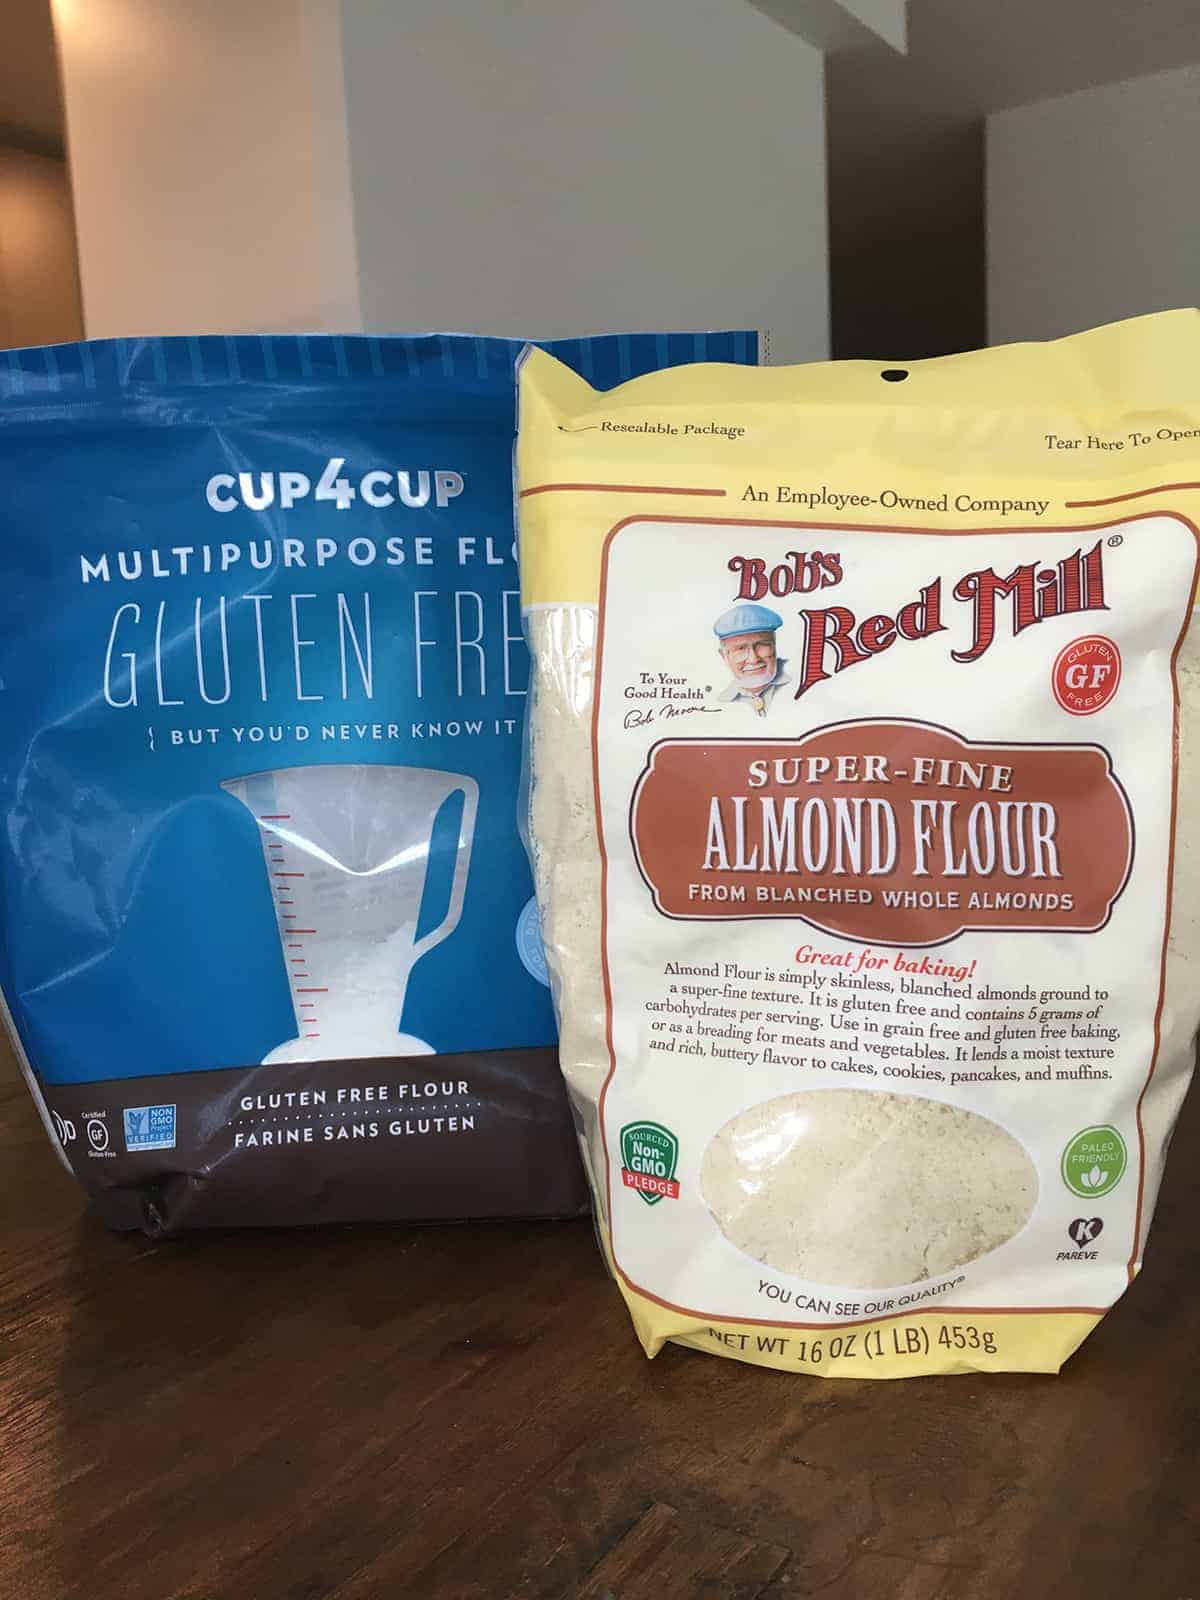 Bags of Cup4Cup Gluten Free Flour and Bob's Red Mill Super-Fine Almond Flour on a brown table